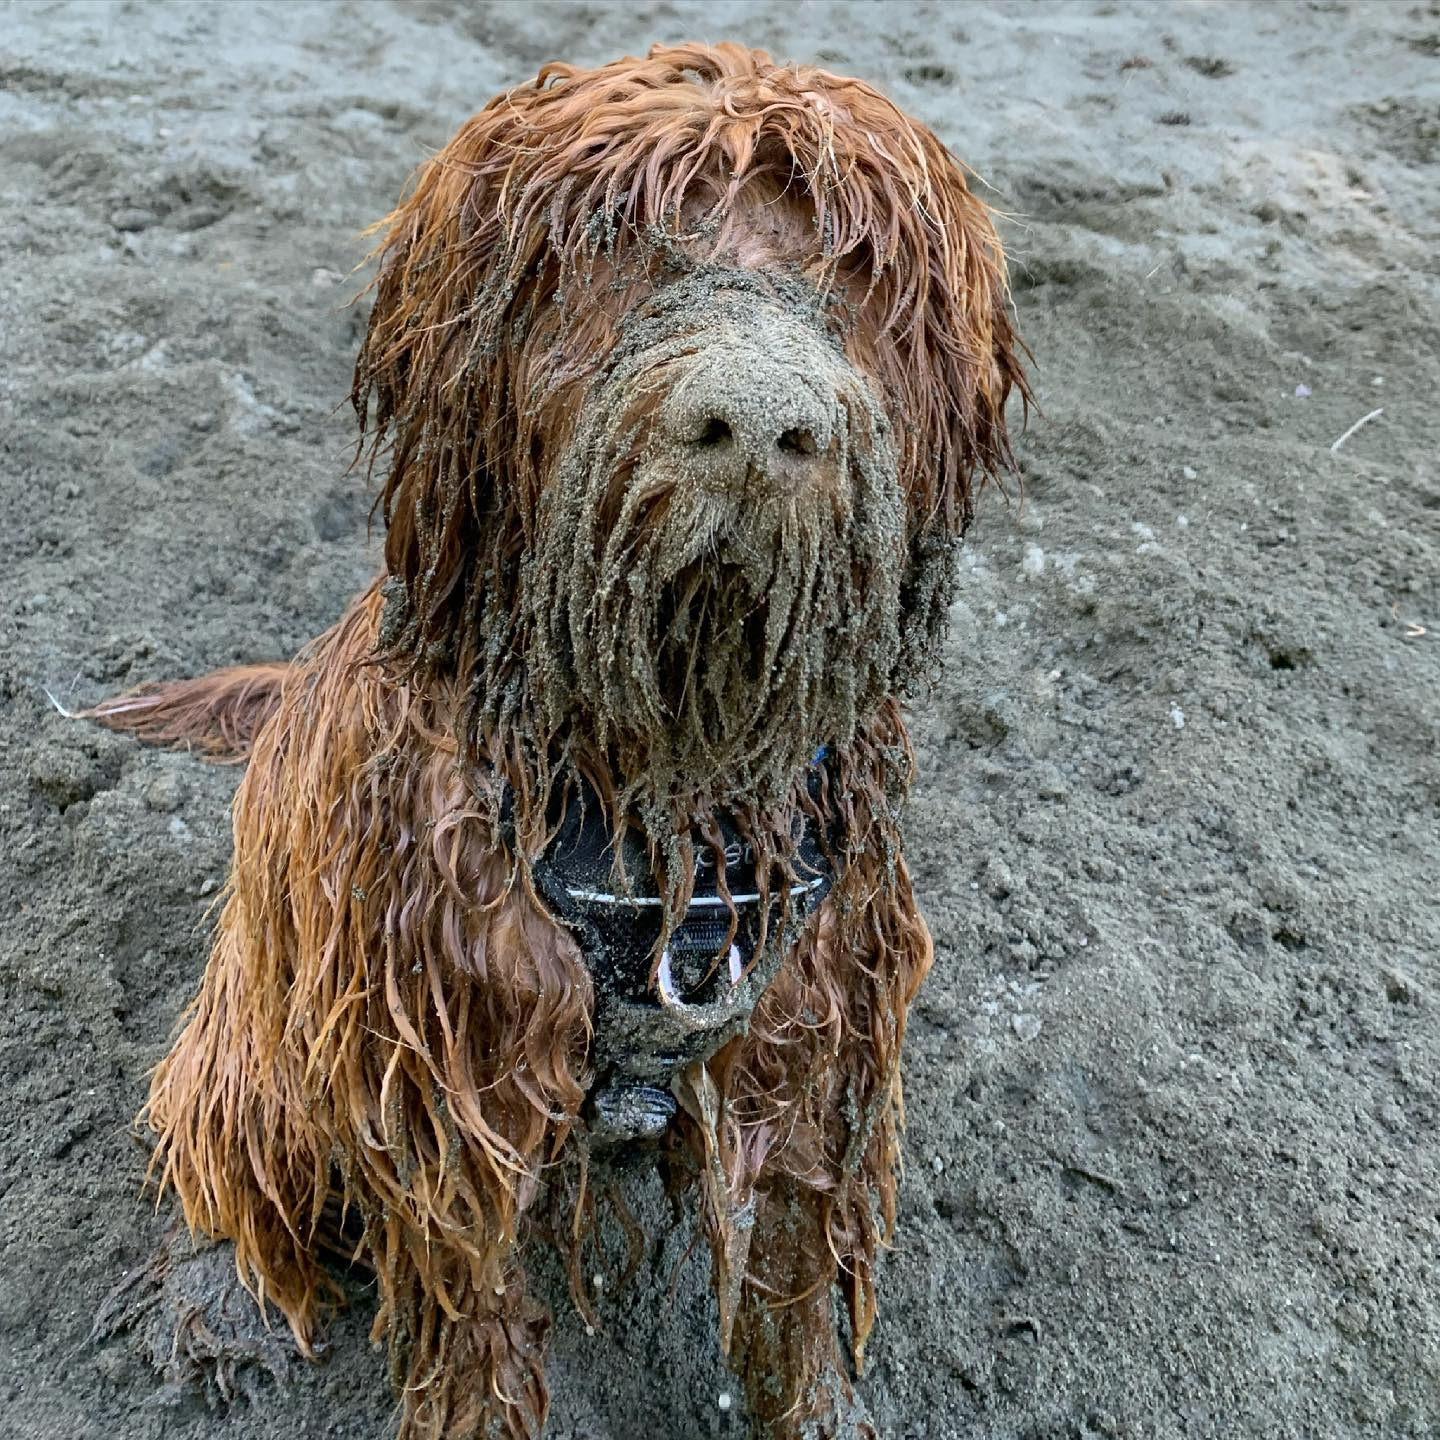 Oh my. This was @rusty.the.dog.yyj today after a play at Thetis Lake. Yeesh. #labradoodle #australianlabradoodle #sunvalleylabradoodles #puppy #yyj #dogsofinstagram #dogsofig #rustydoodle #thedood